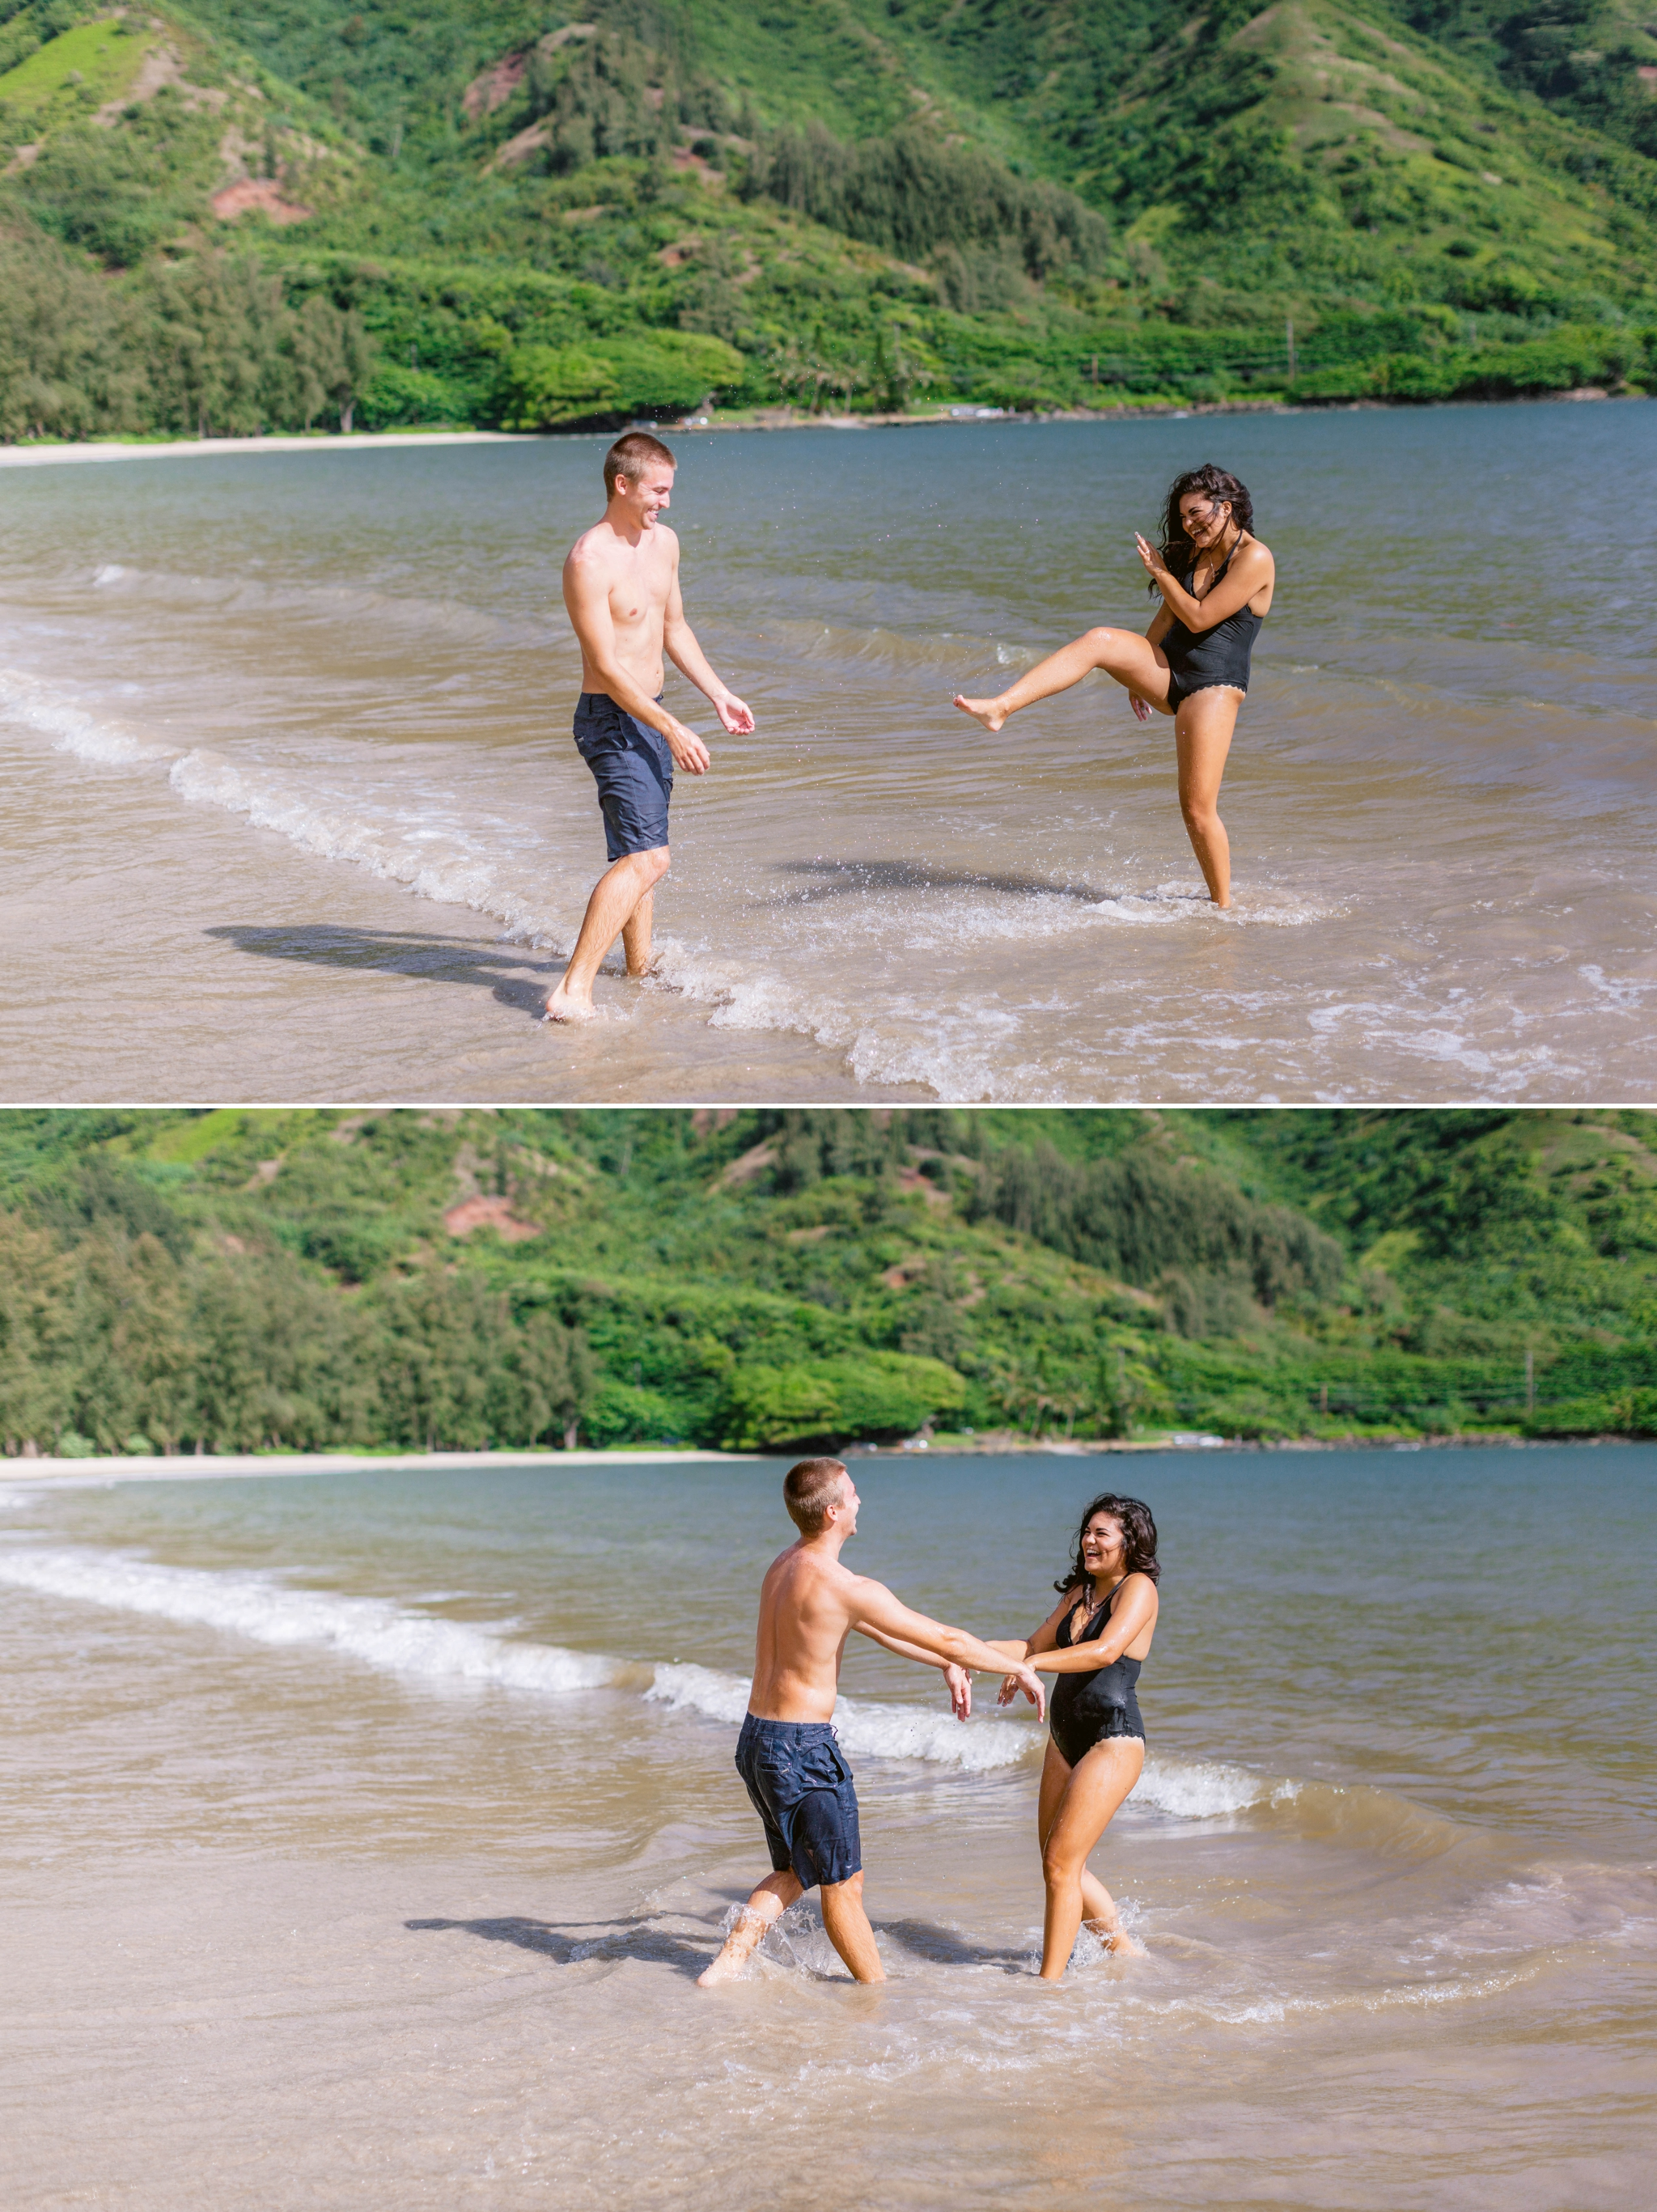 Couple playing in the ocean in their bathing suits - Rilee + Max - Beach Engagement Session at Kahana Bay in Kaaawa, HI - Oahu Hawaii Wedding Photographer - #hawaiiengagementphotographer #oahuengagementphotographer